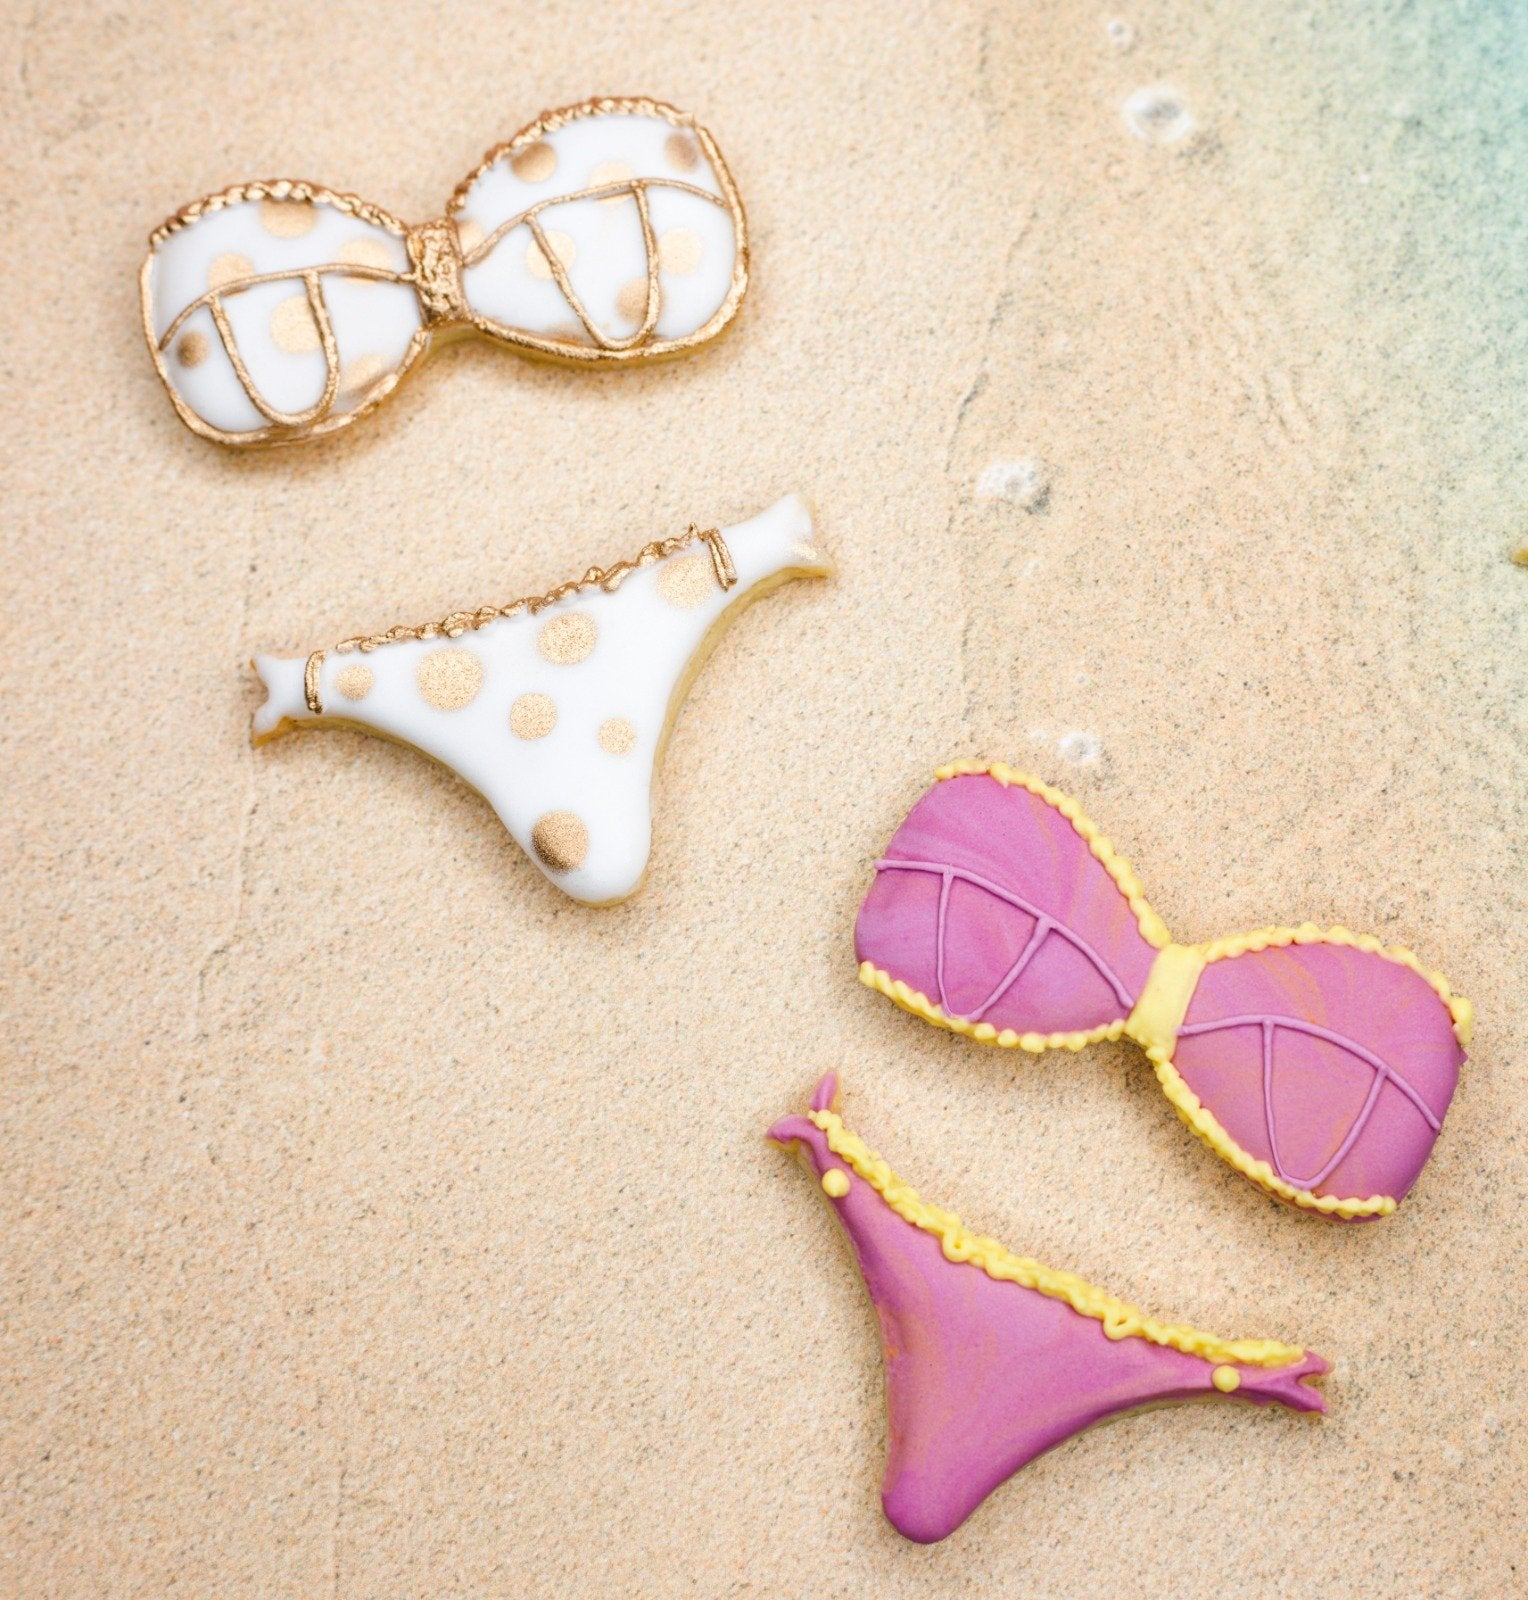 Summer Swimsuit #2 Bikini - Dolce3D Cookie Cutters